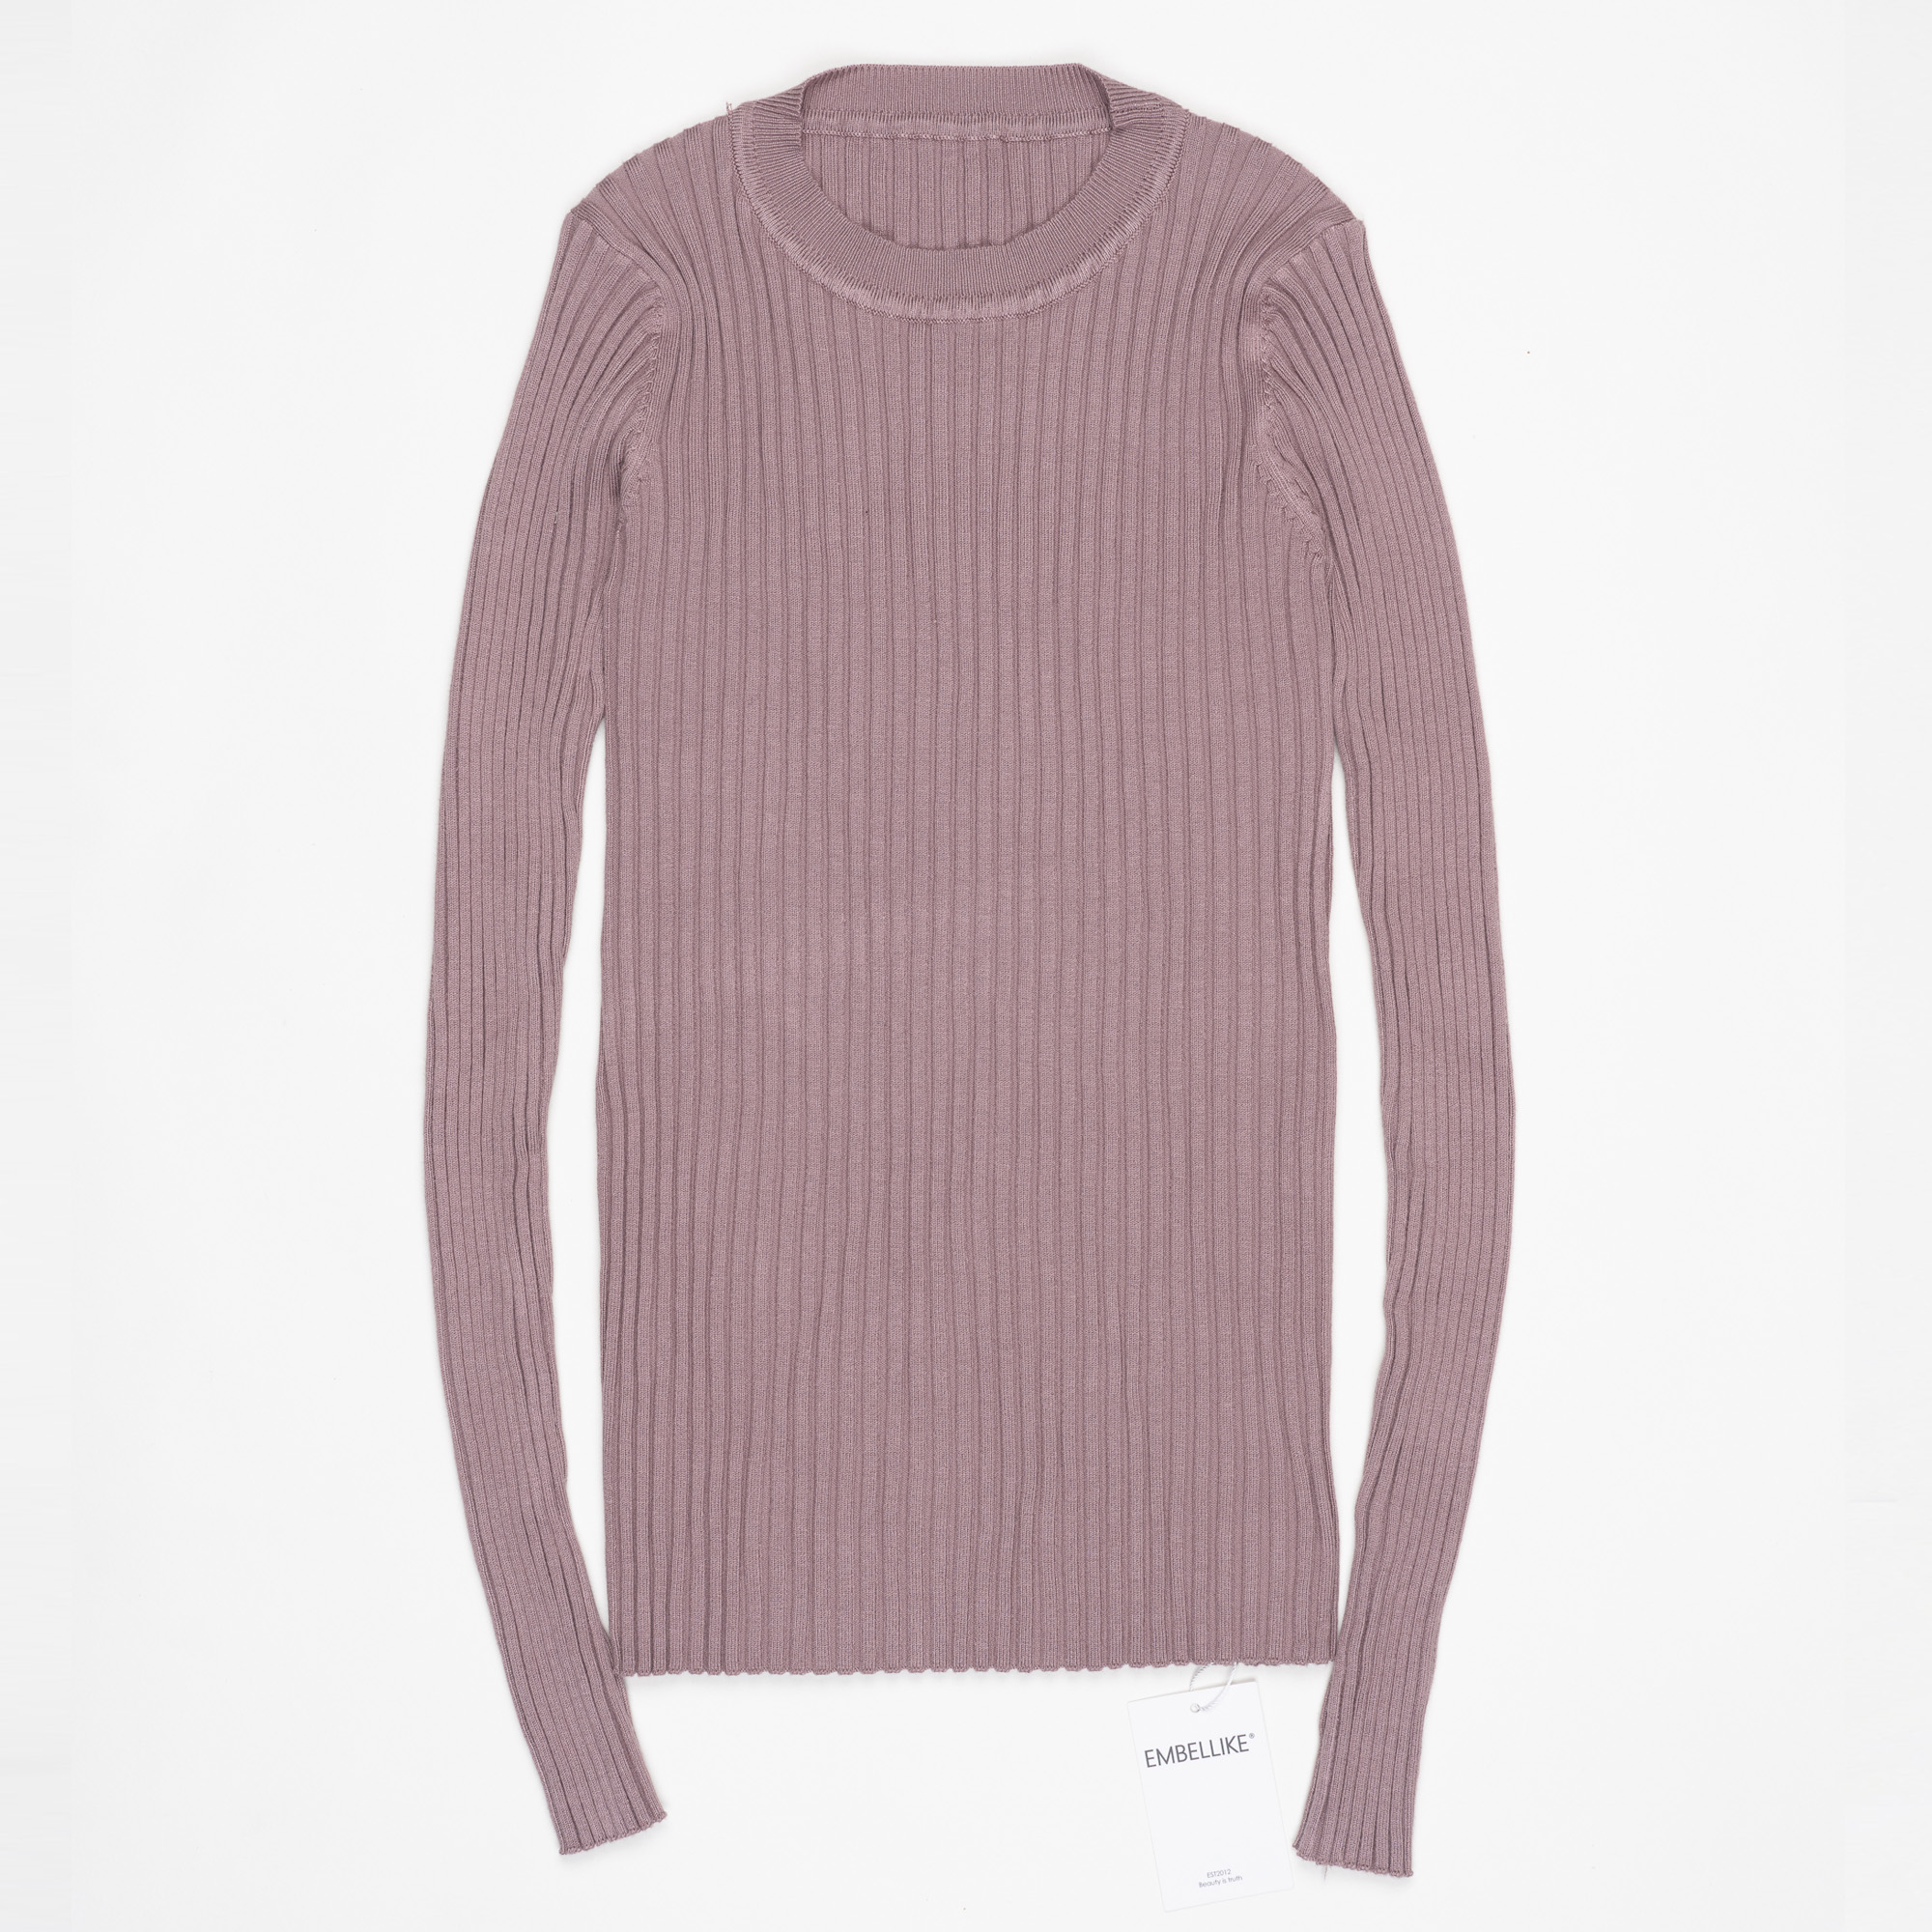 Women Sweater Pullover Basic Ribbed Sweaters Cotton Tops Knitted Solid Crew Neck With Thumb Hole 16